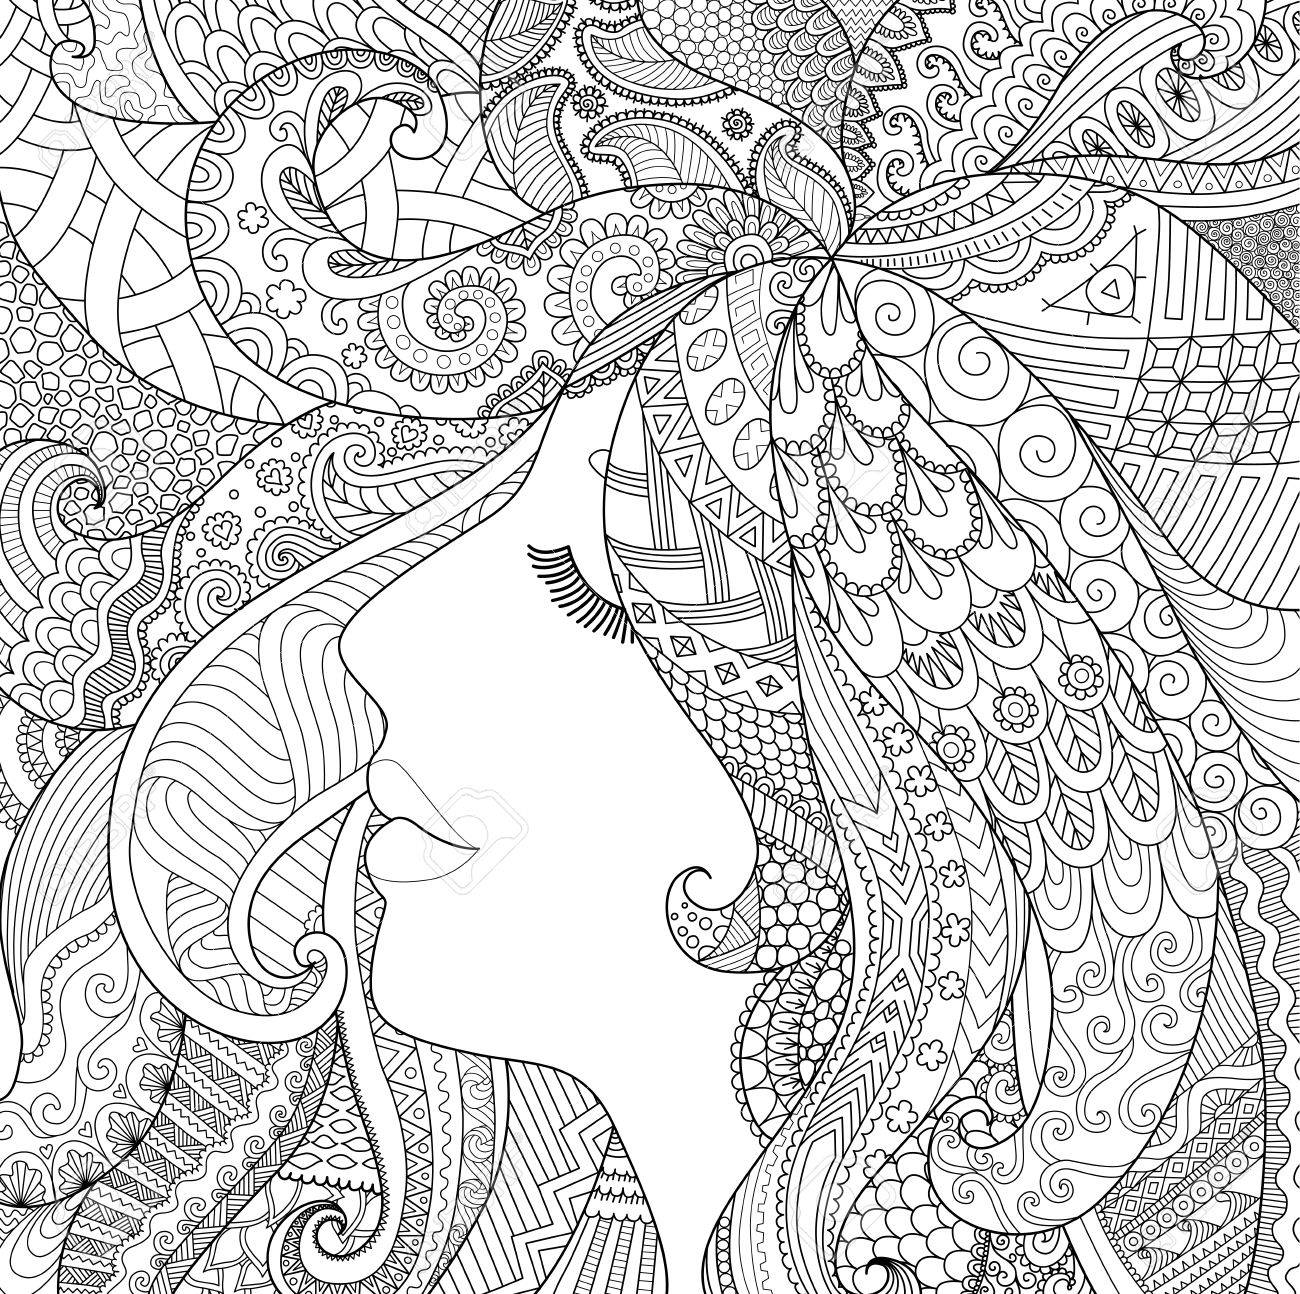 Zendoodle Design Of Girl Sleeping With Shadow Effect For Adult